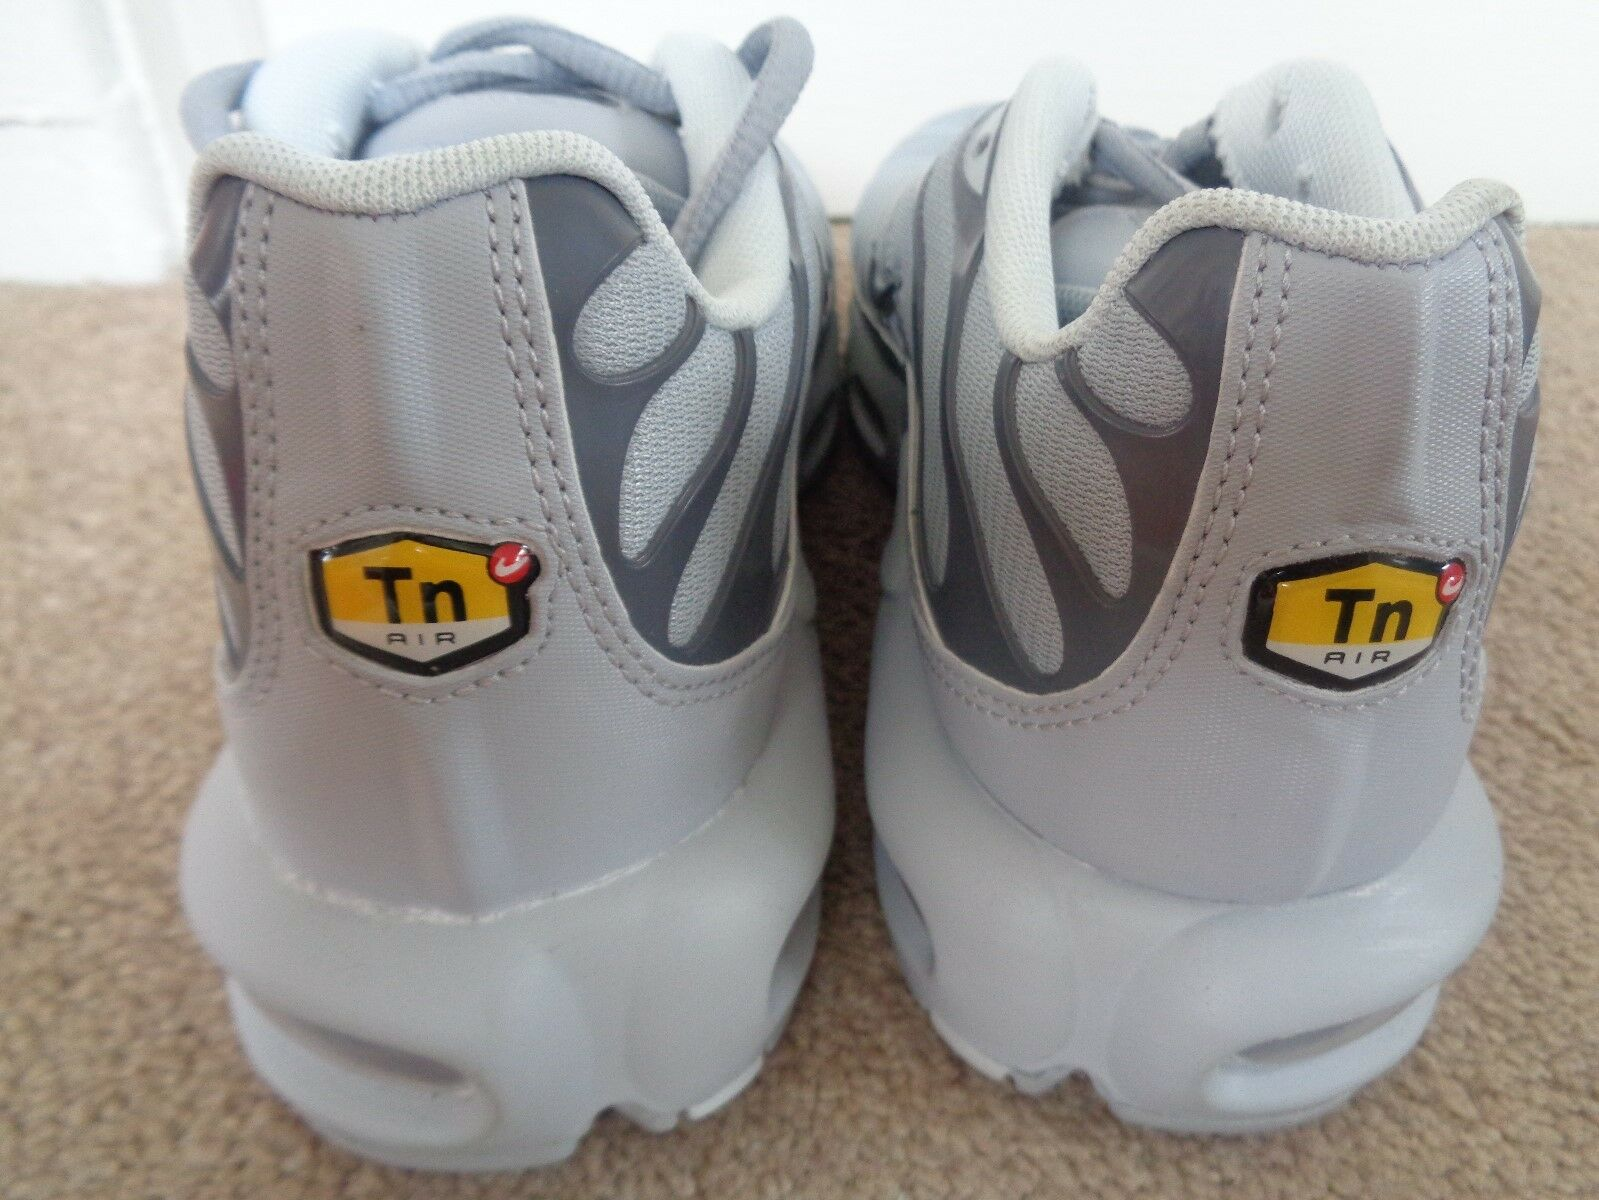 Nike Air max plus trainers sneakers chaussures 852630 006 us uk 6 eu 40 us 006 7 NEW+BOX 611f62